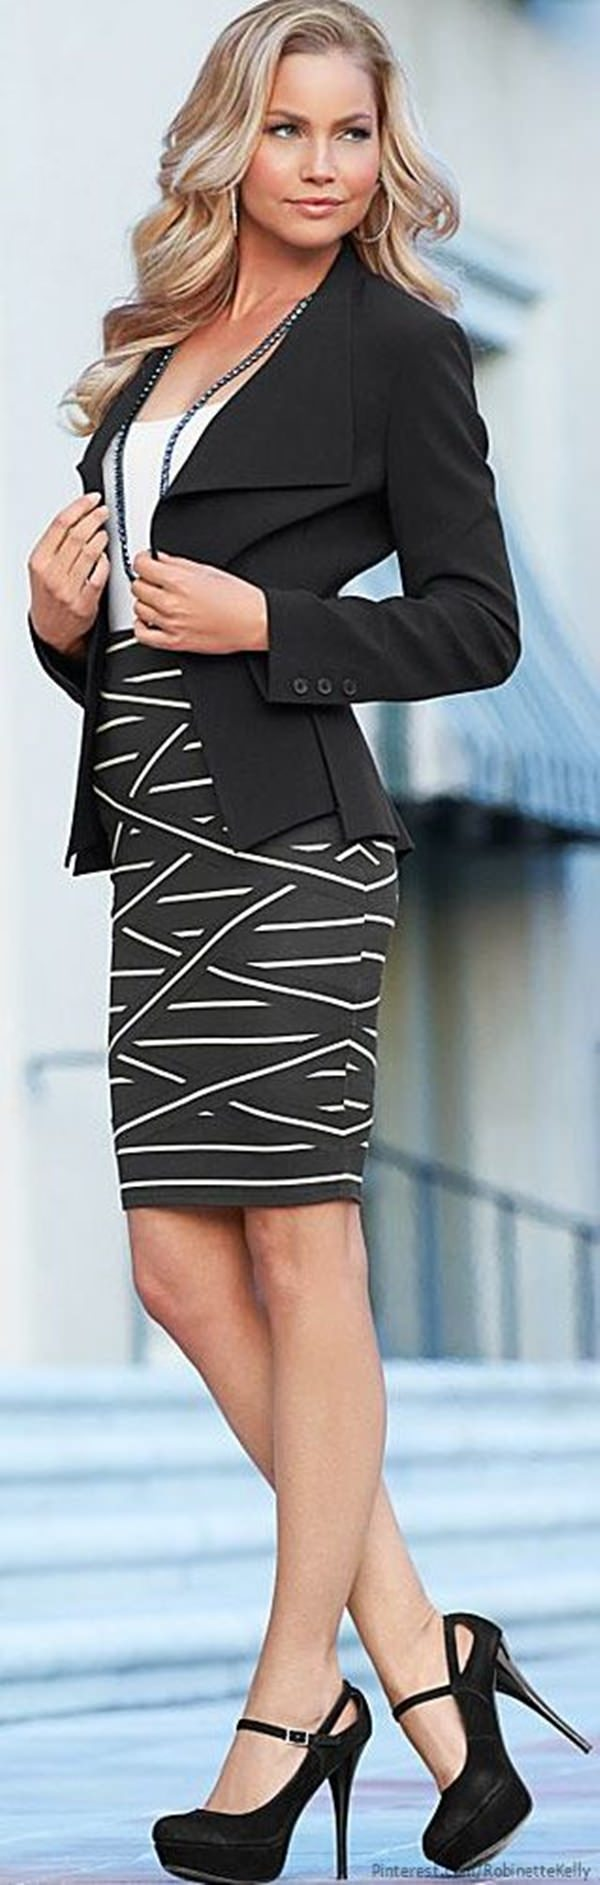 Luxury 40 Business Women Pencil Skirt Outfits For 2017  Stylishwife